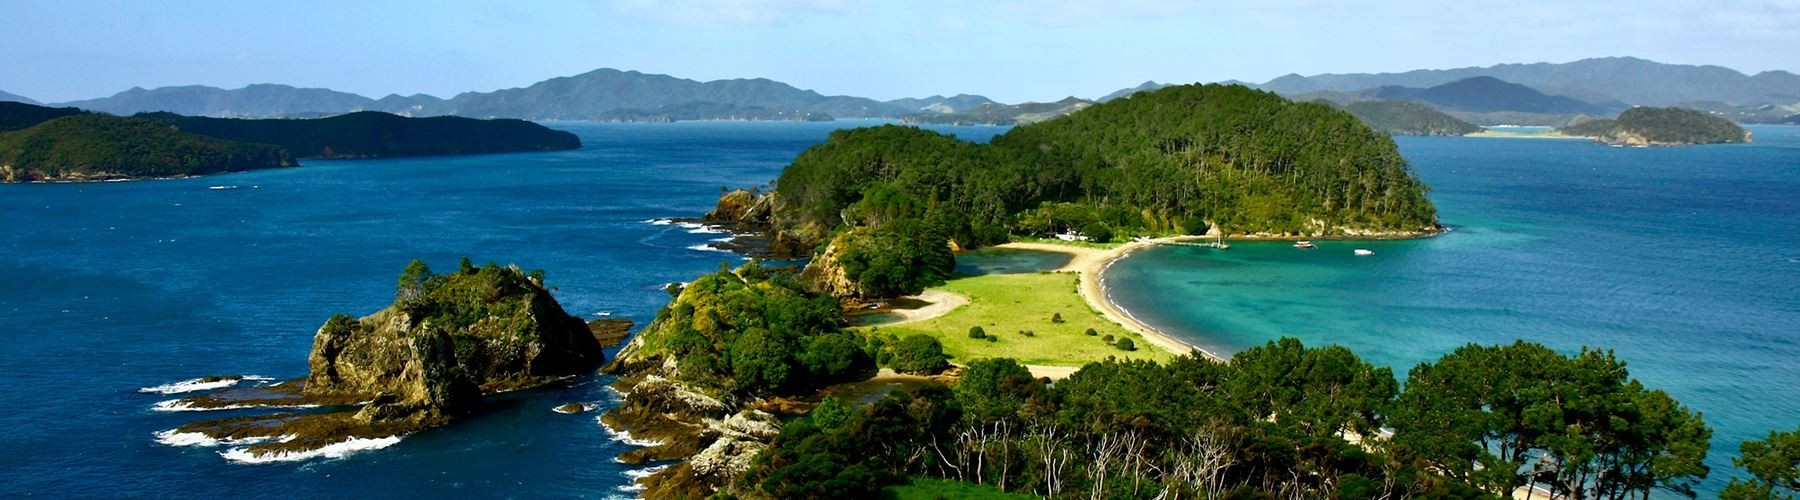 Lonely Planet votes Bay of Islands in the top 3 destinations, Asia Pacific